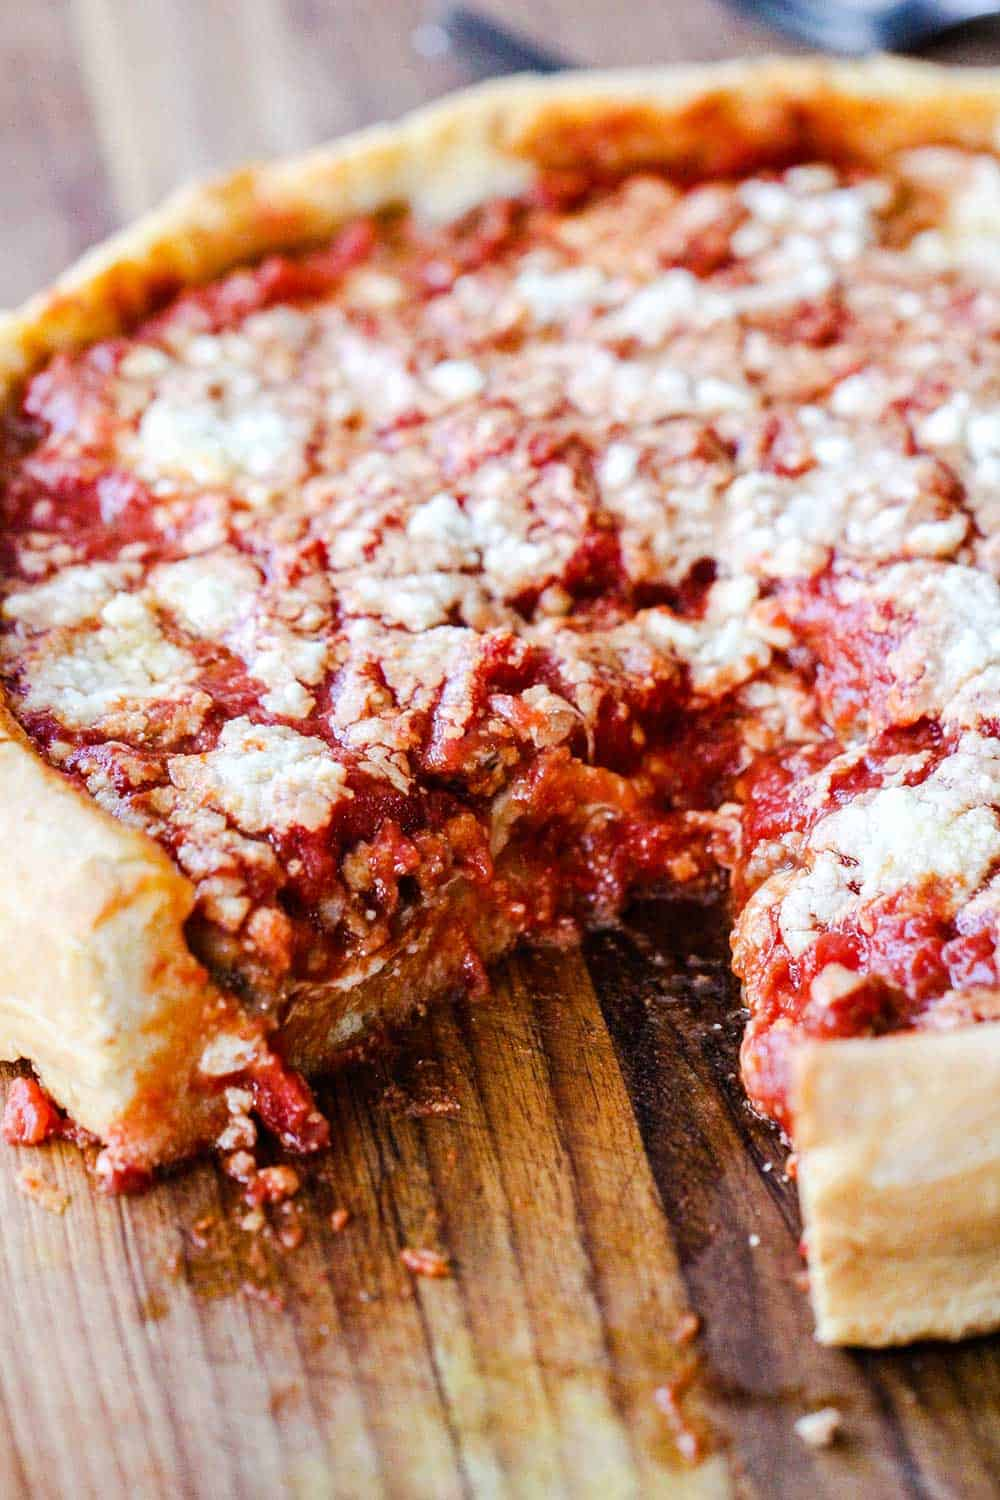 A deep dish pizza with a slice missing on a cutting board.